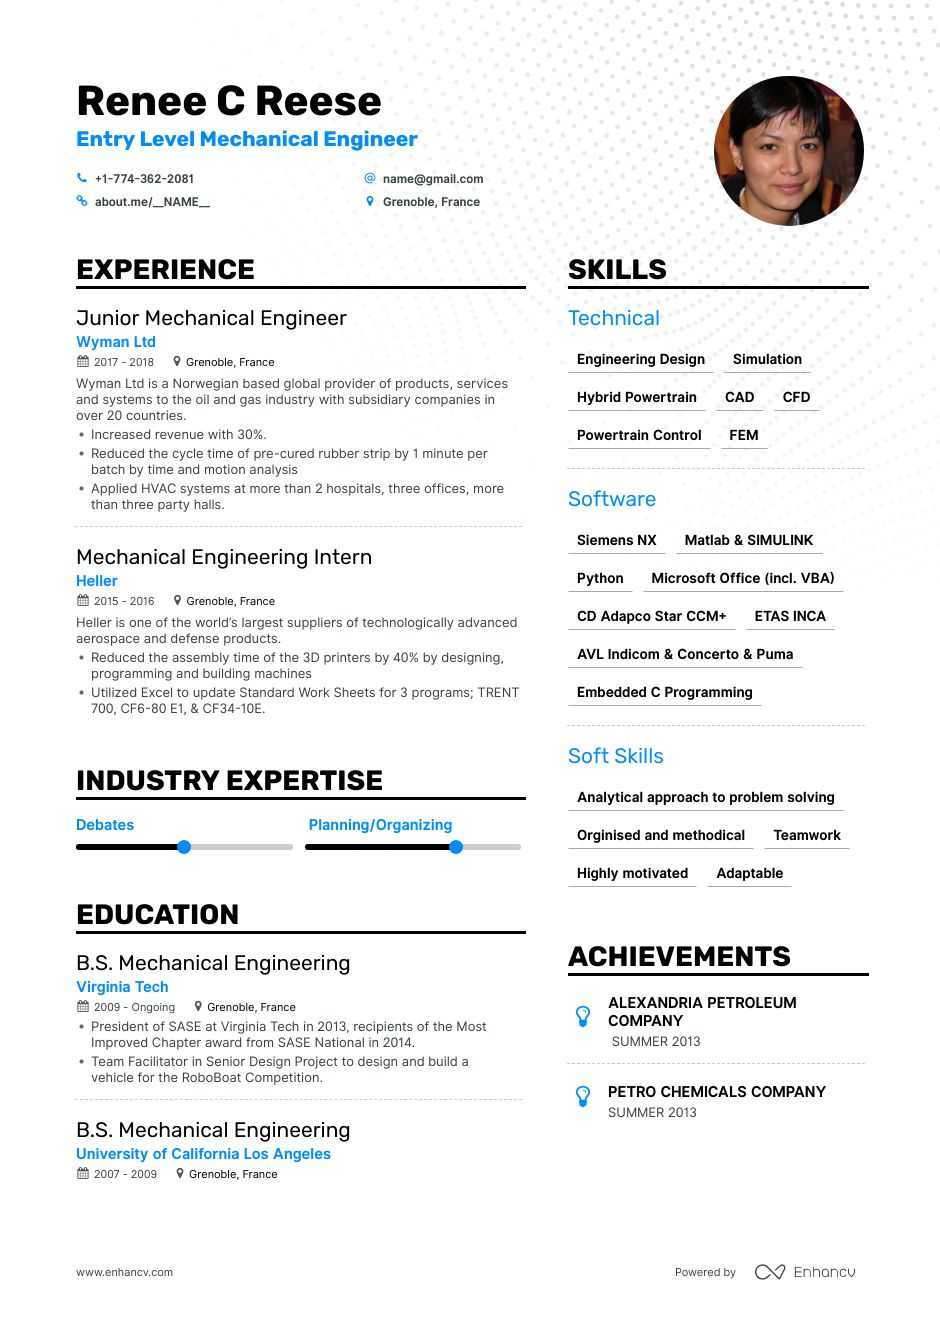 top entry level mechanical engineer resume examples expert tips enhancv engineering Resume Entry Level Mechanical Engineering Resume Examples